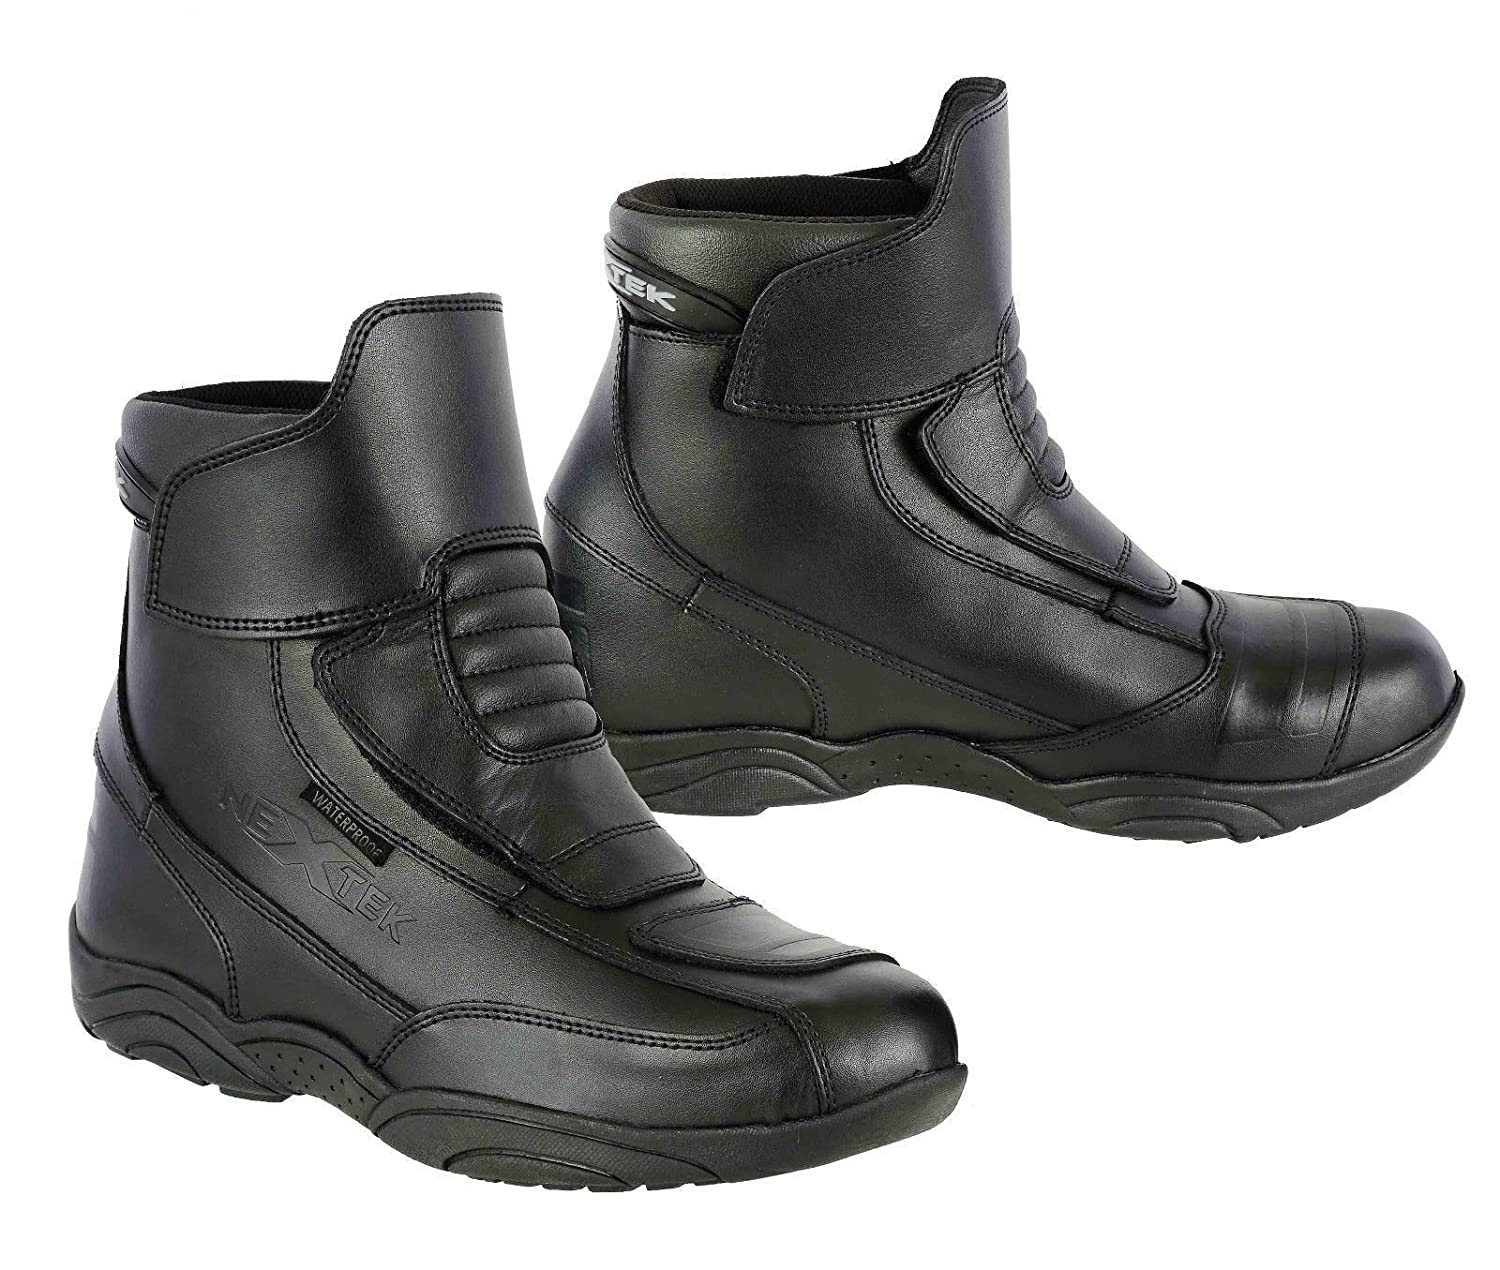 7 Motorcycle Black Short Ankle Racing New Rider Boot for Men Boys Profirst Global Motorbike Waterproof Touring Boots EU 41